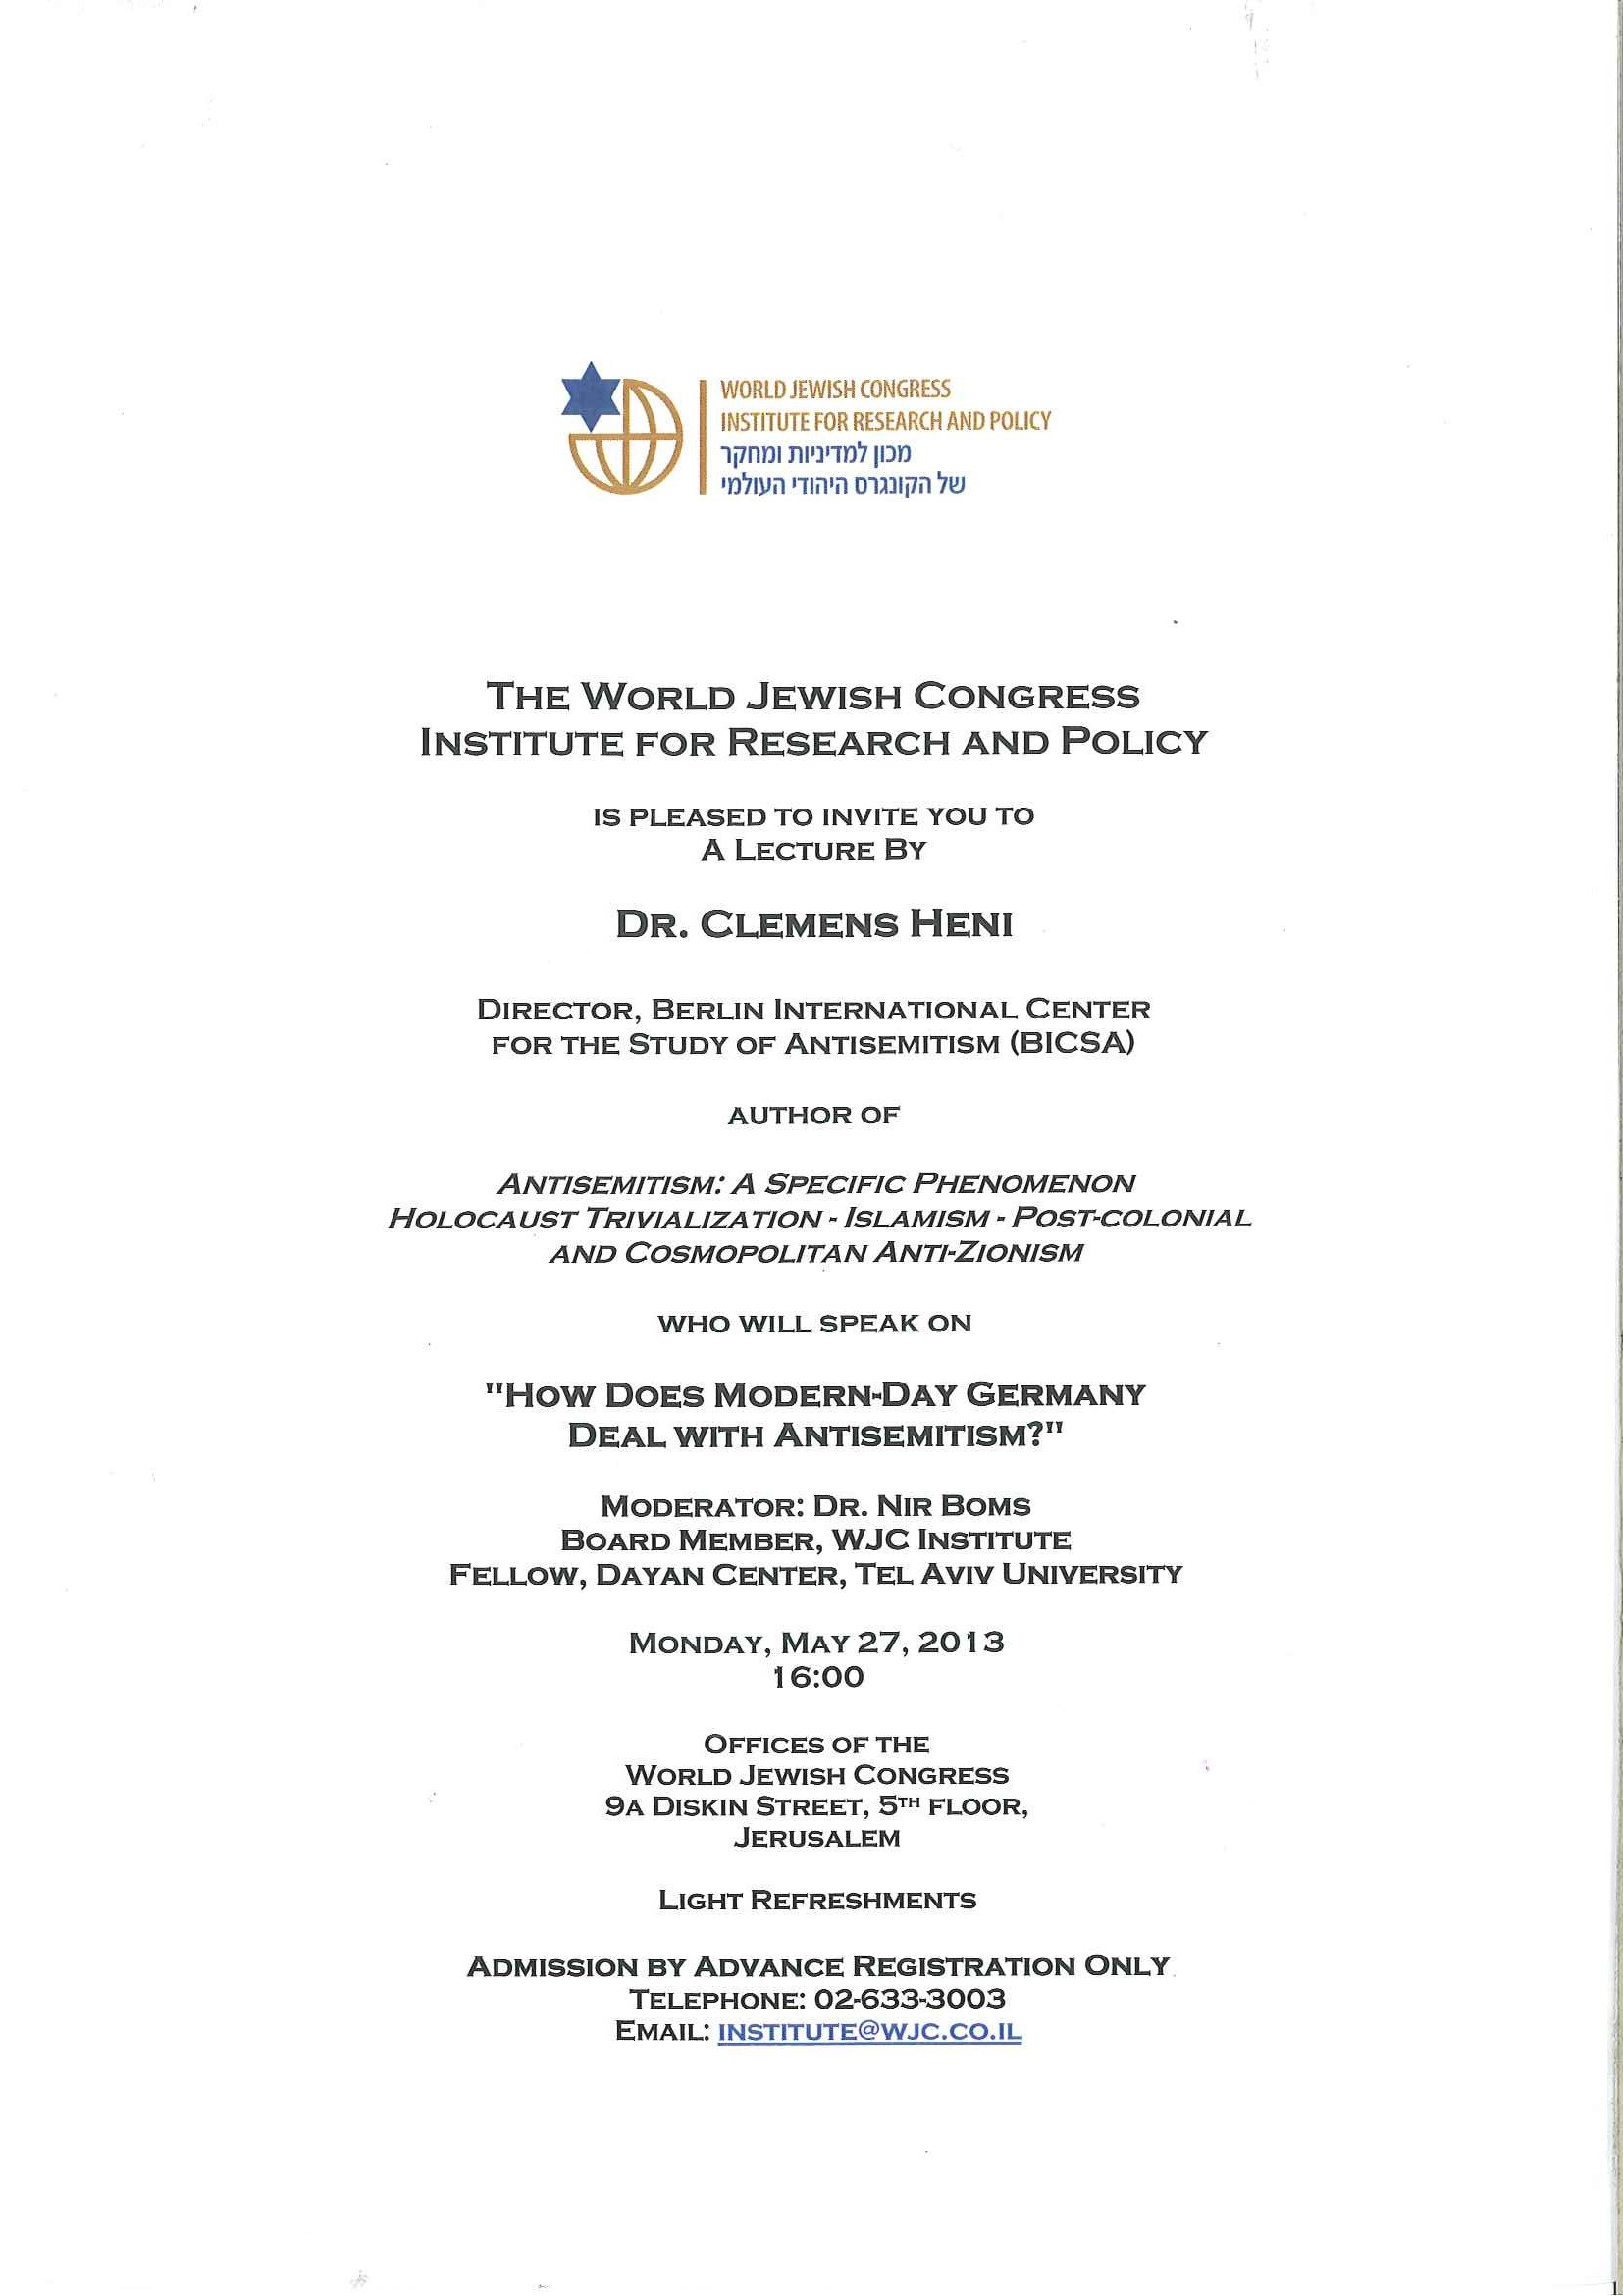 invitation-to-talk-by-clemens-heni-on-germany-may-27-2013